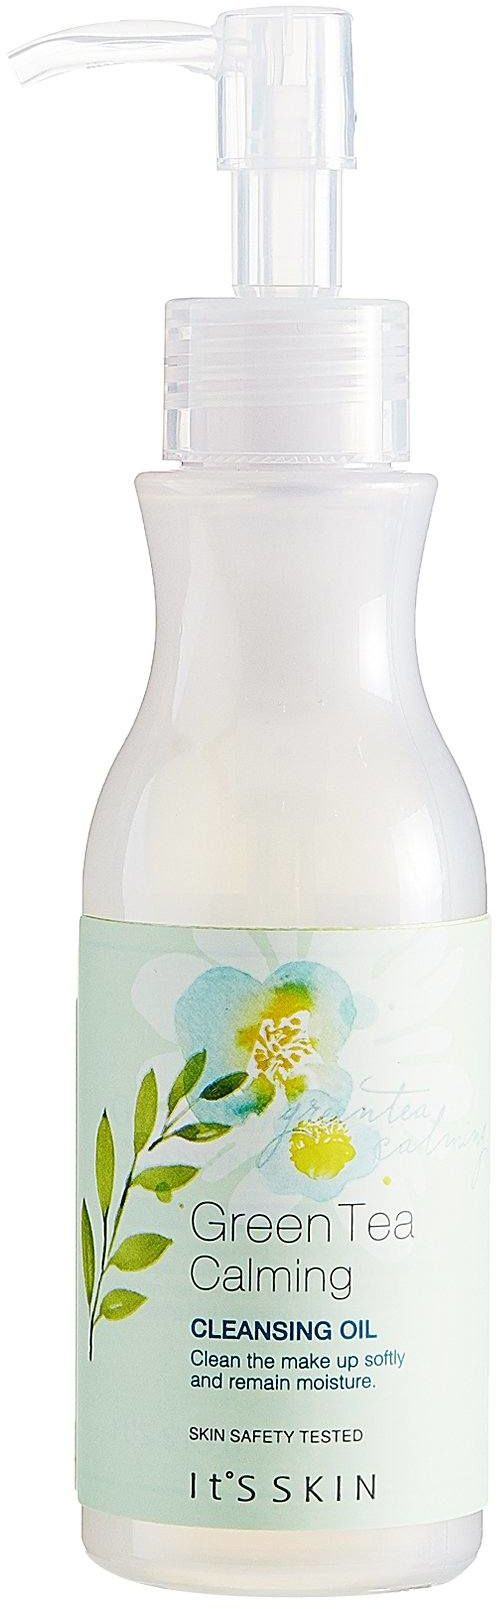 Green Tea Calming Cleansing Oil Olejek do demakijażu 145 ml